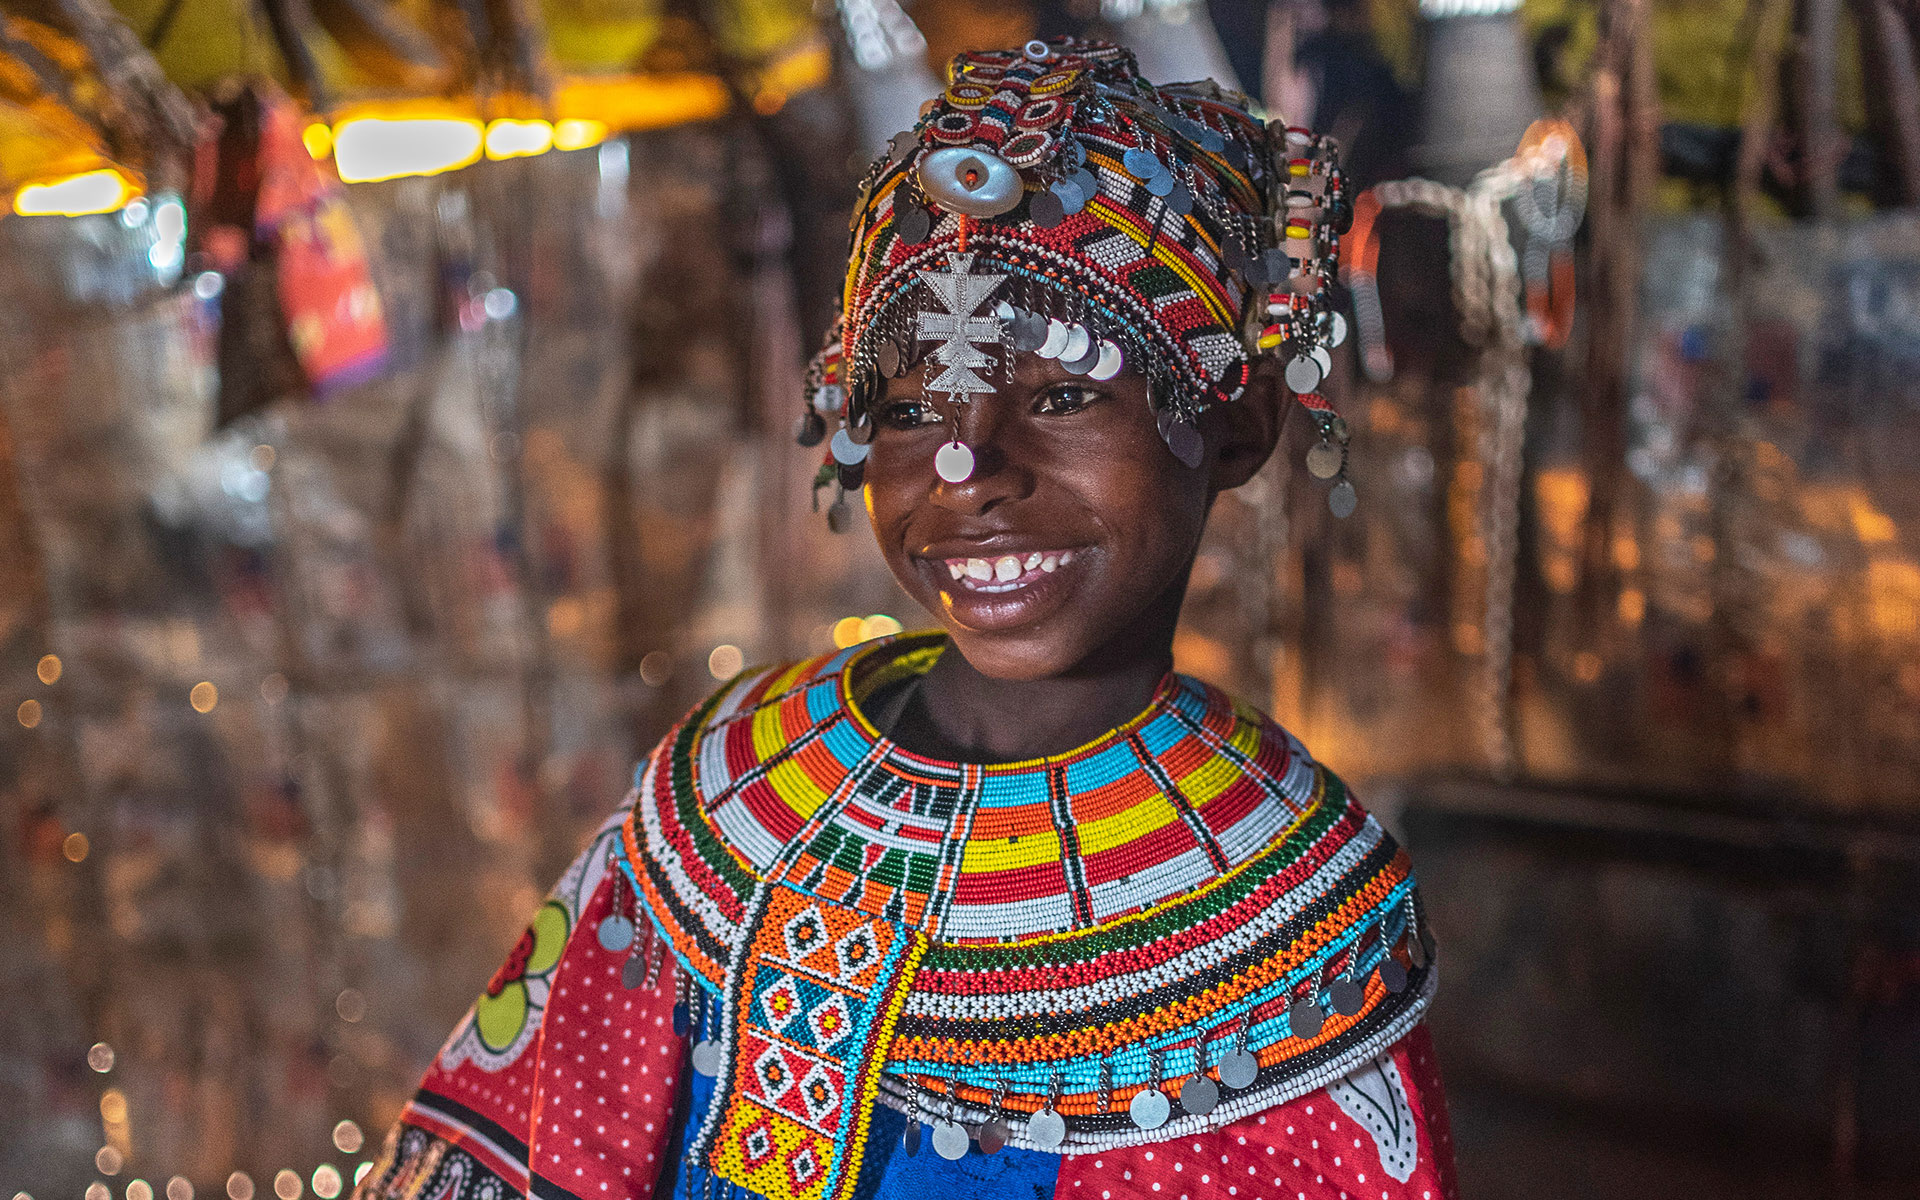 Maindi is an 8-year-old in Kenya